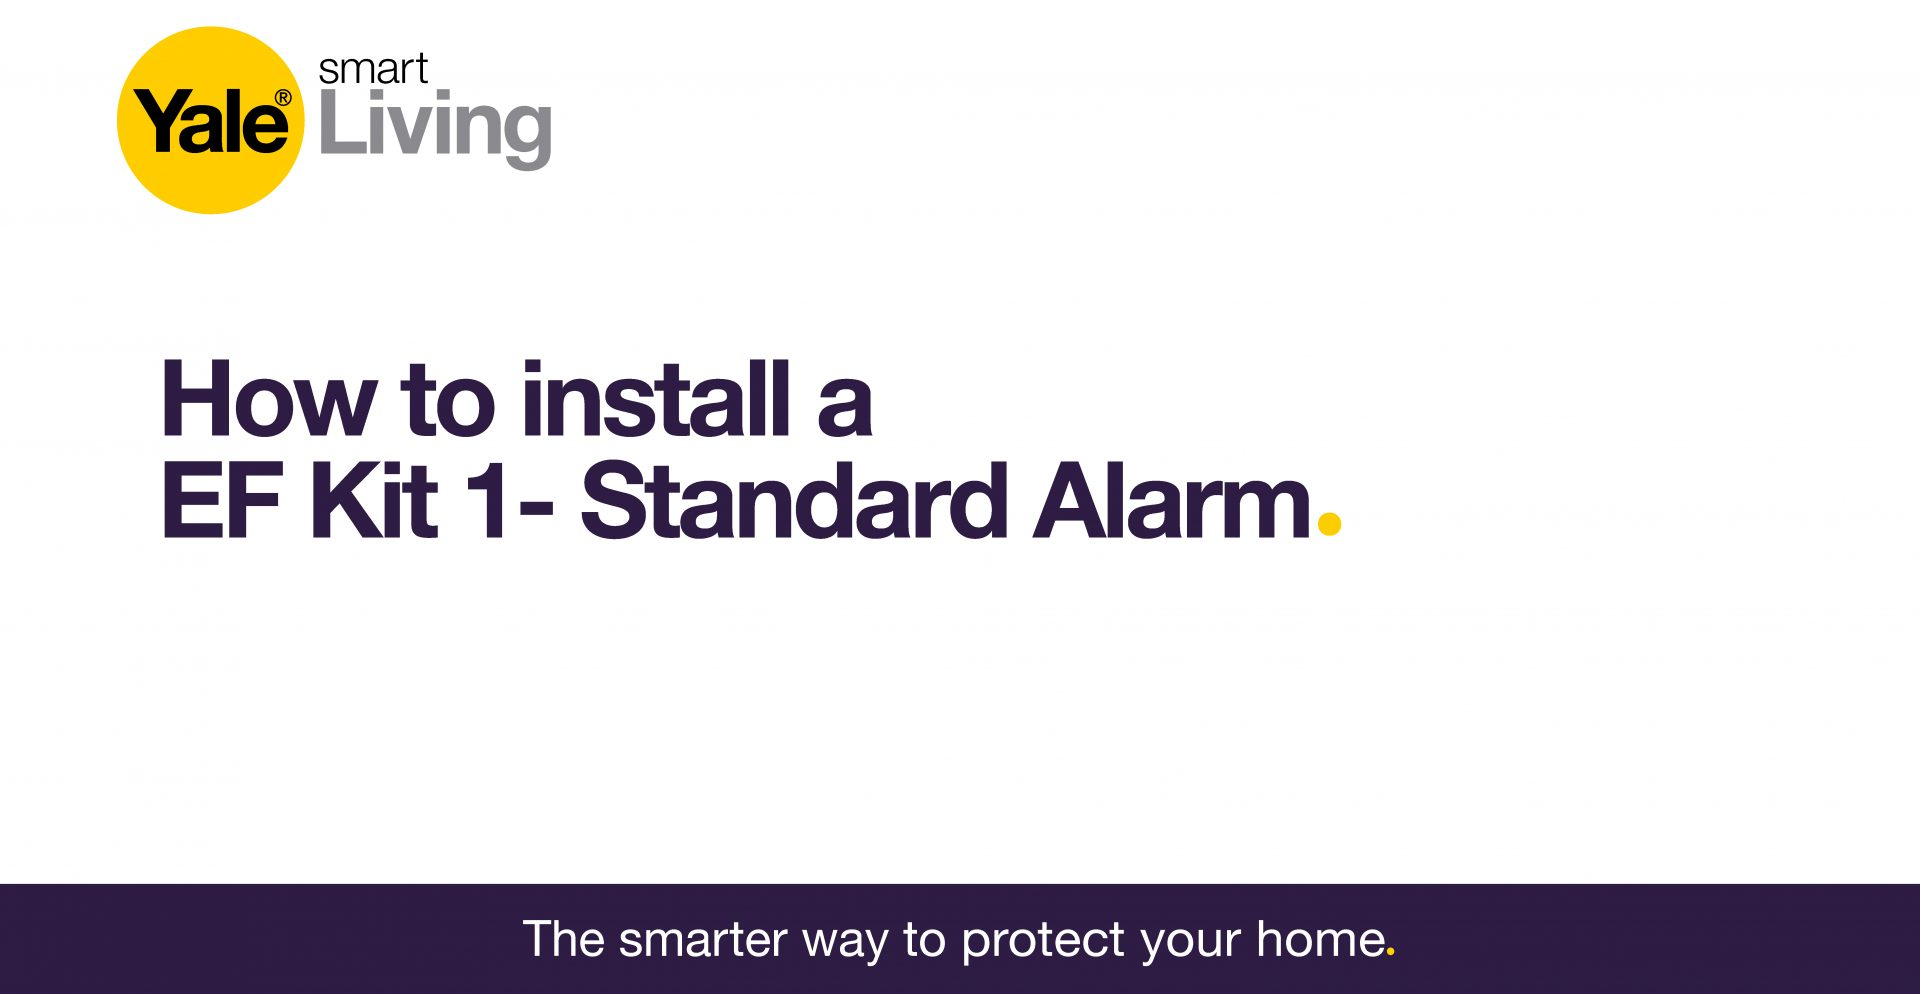 Image linking to video showing how to install the EF Kit 1 - Standard alarm.